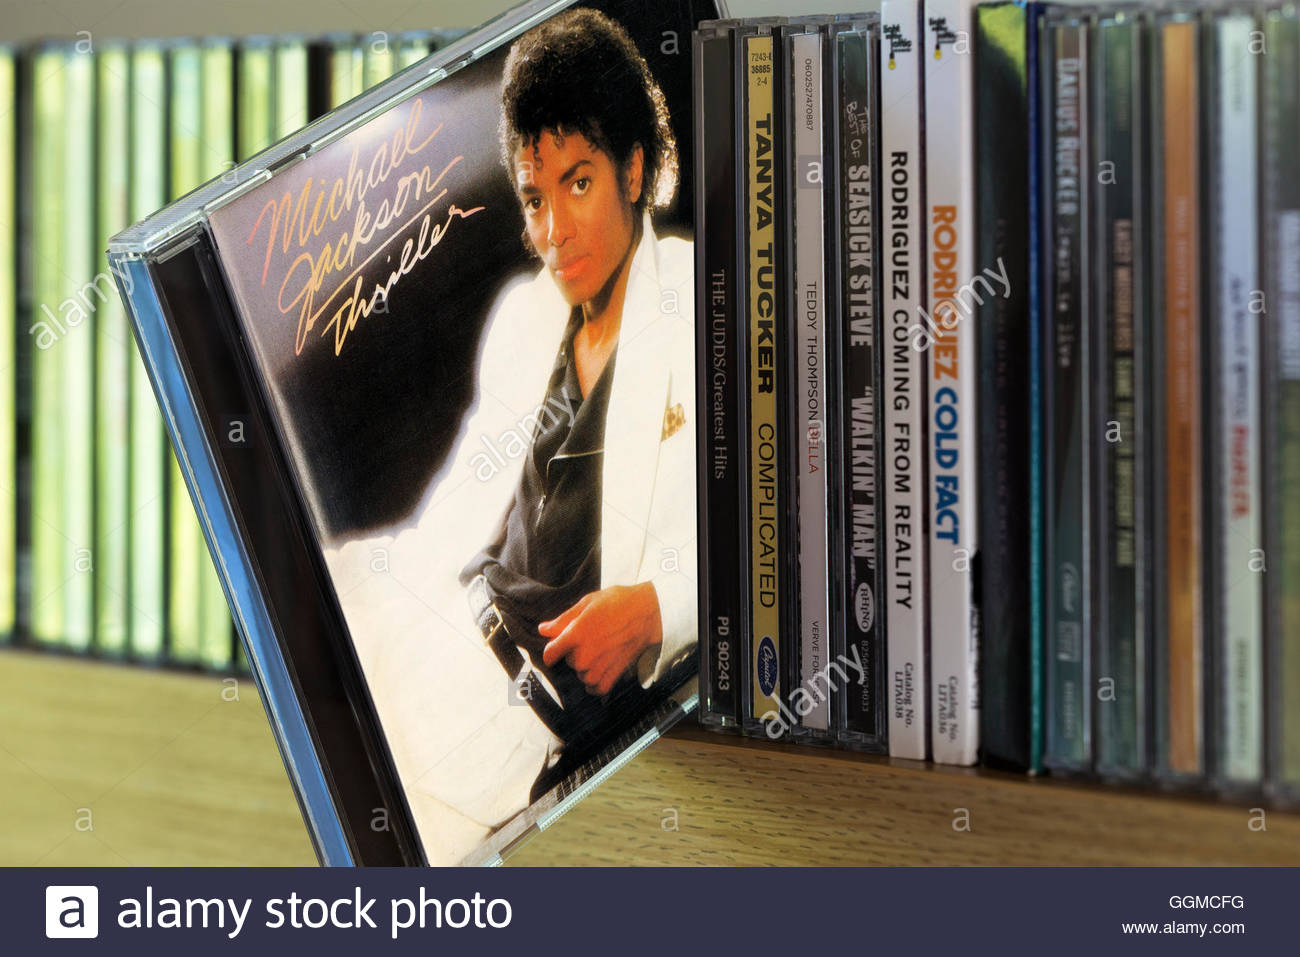 Thriller, Michael Jackson CD pulled out from among other